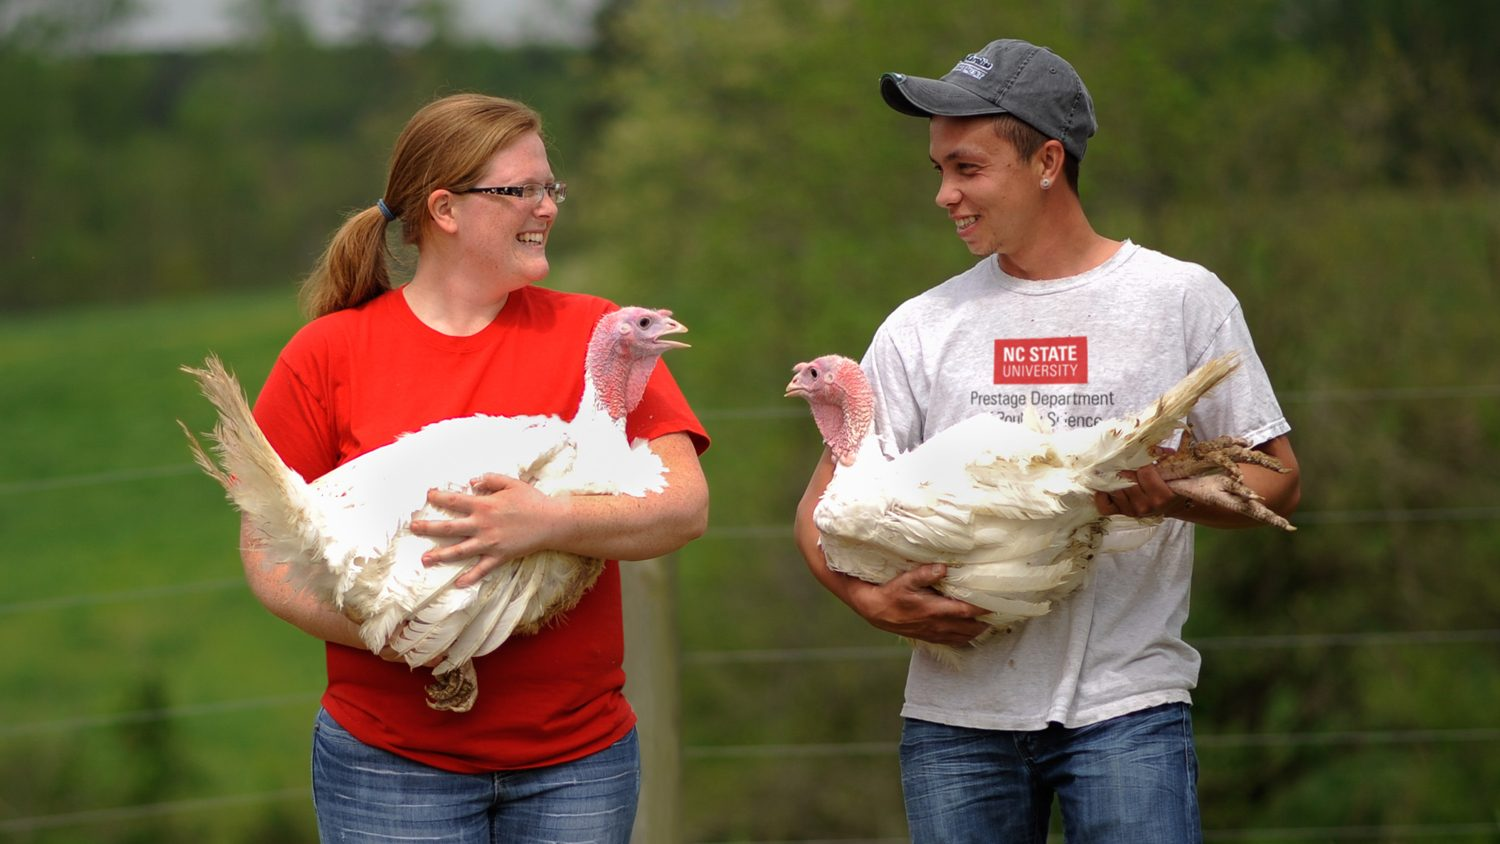 Prestage Dept of Poultry Science students with turkeys at NC State's Lake Wheeler Farms facility